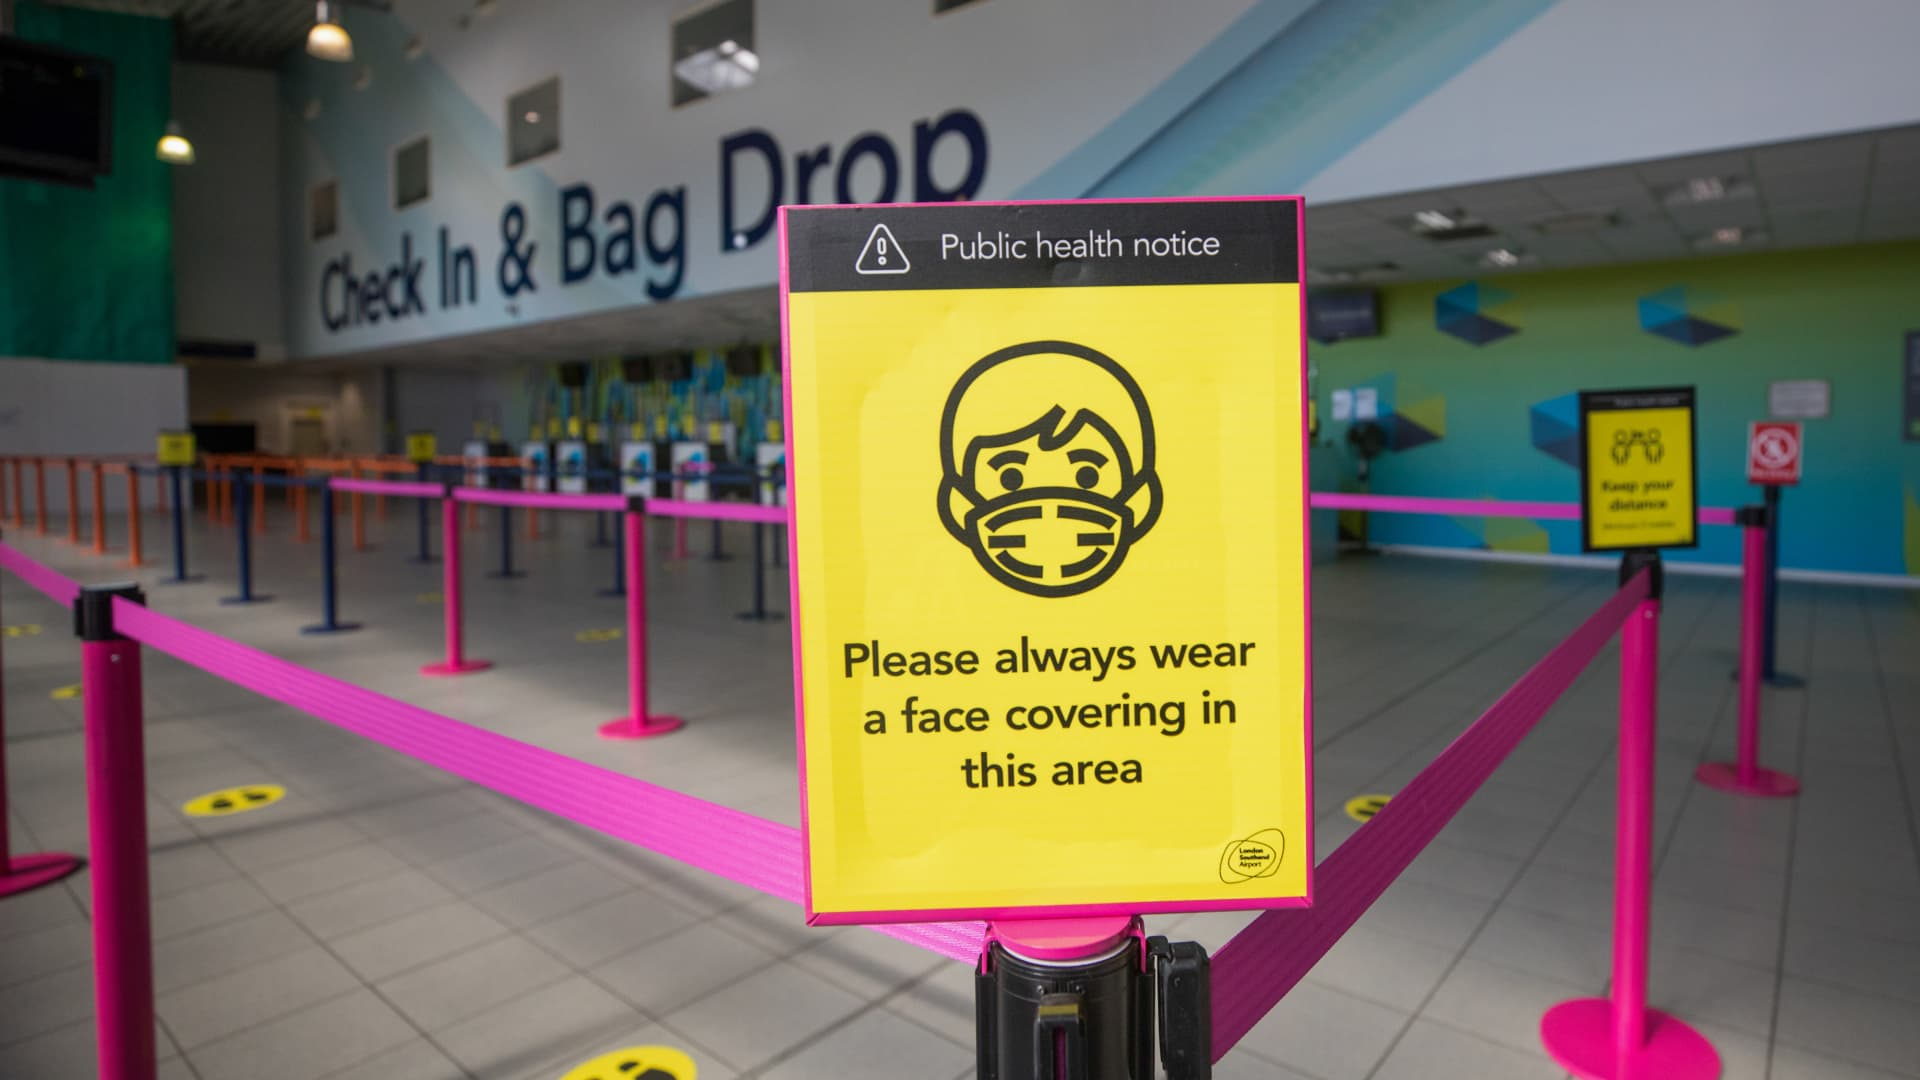 A public health notice stands at the entrance to the check in desks at London Southend Airport, part of the Stobart Group on Tuesday, July 7, 2020.